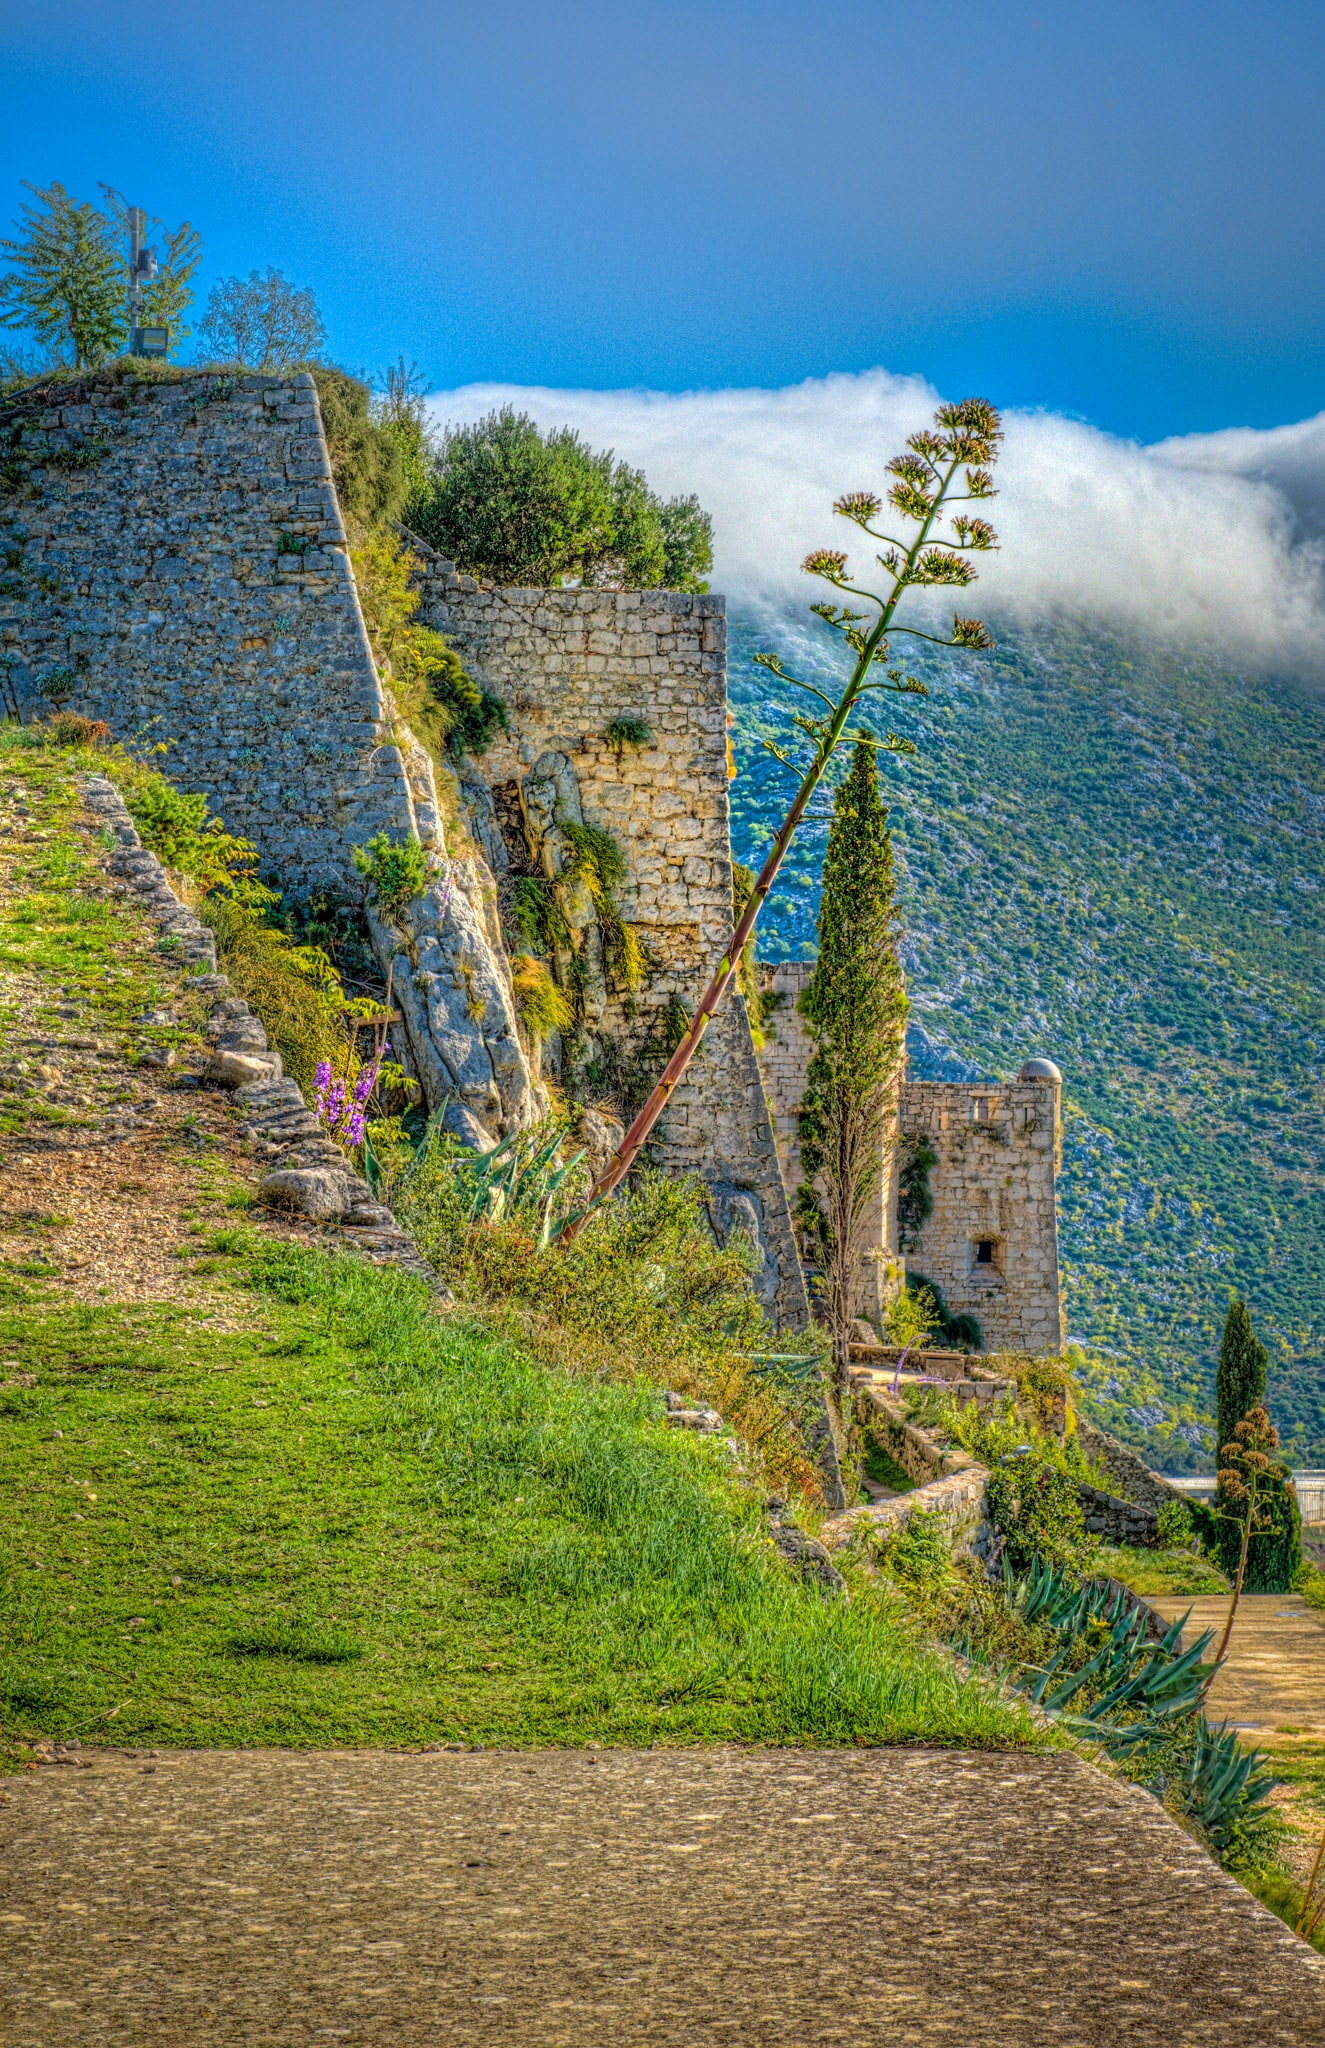 A detail of the fortification walls of Klis Fortress, above Split, with an agave leaning away from the walls.